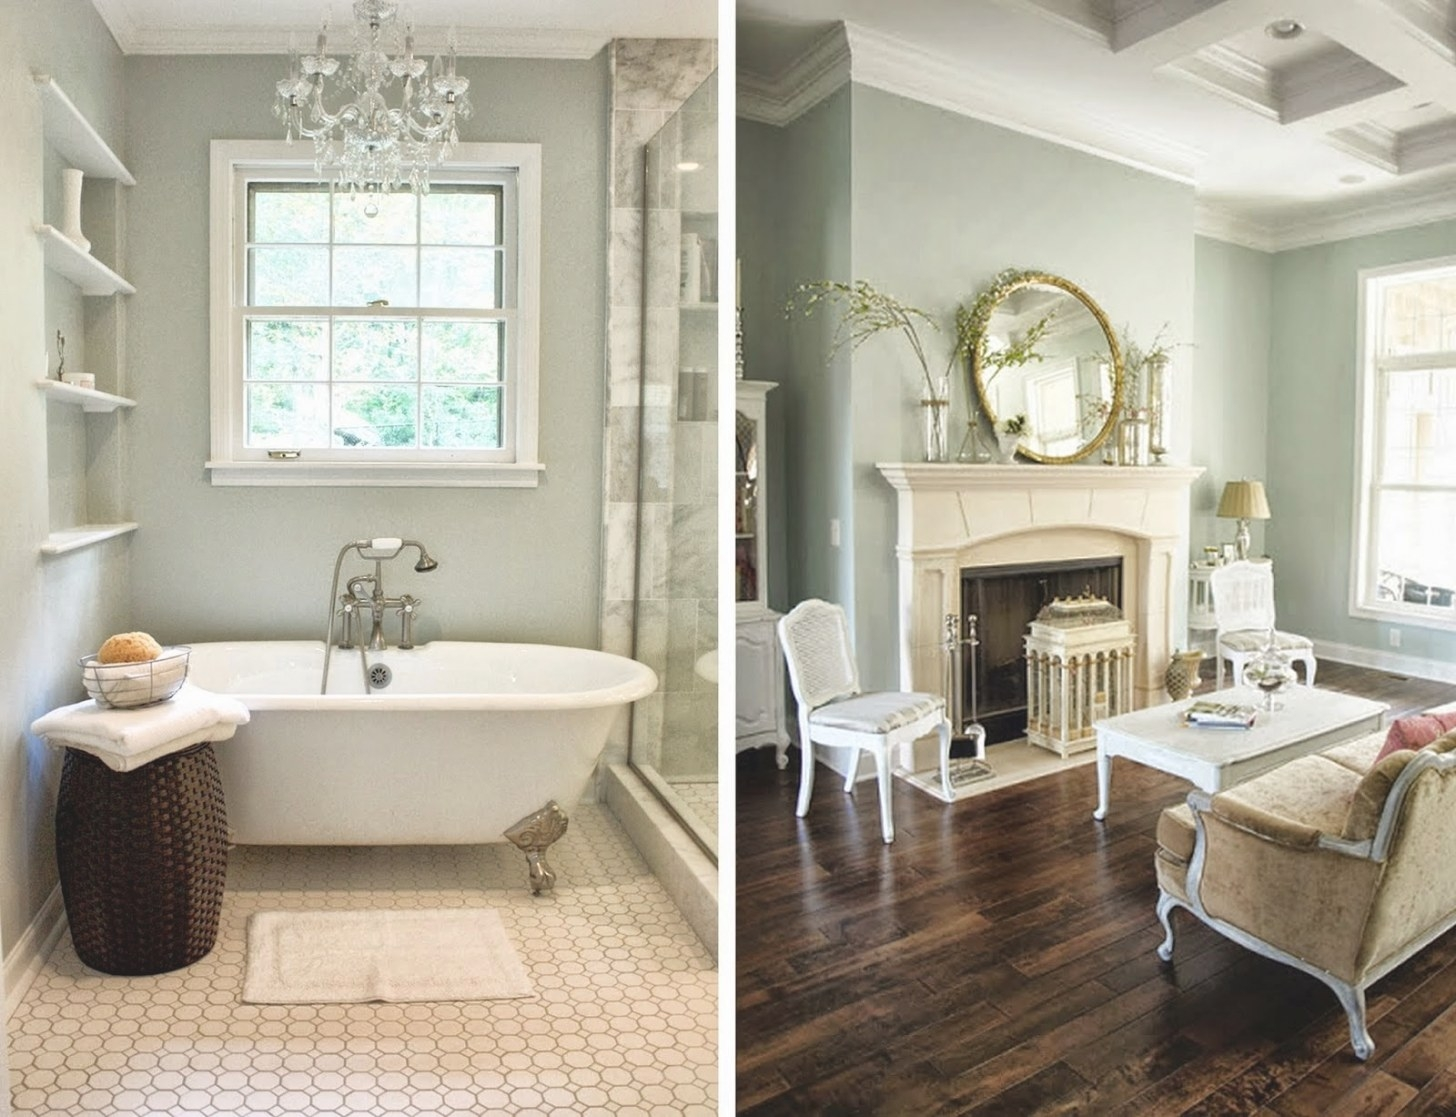 C.b.i.d. Home Decor And Design: The Dallas Wedding for Benjamin Moore Sea Salt